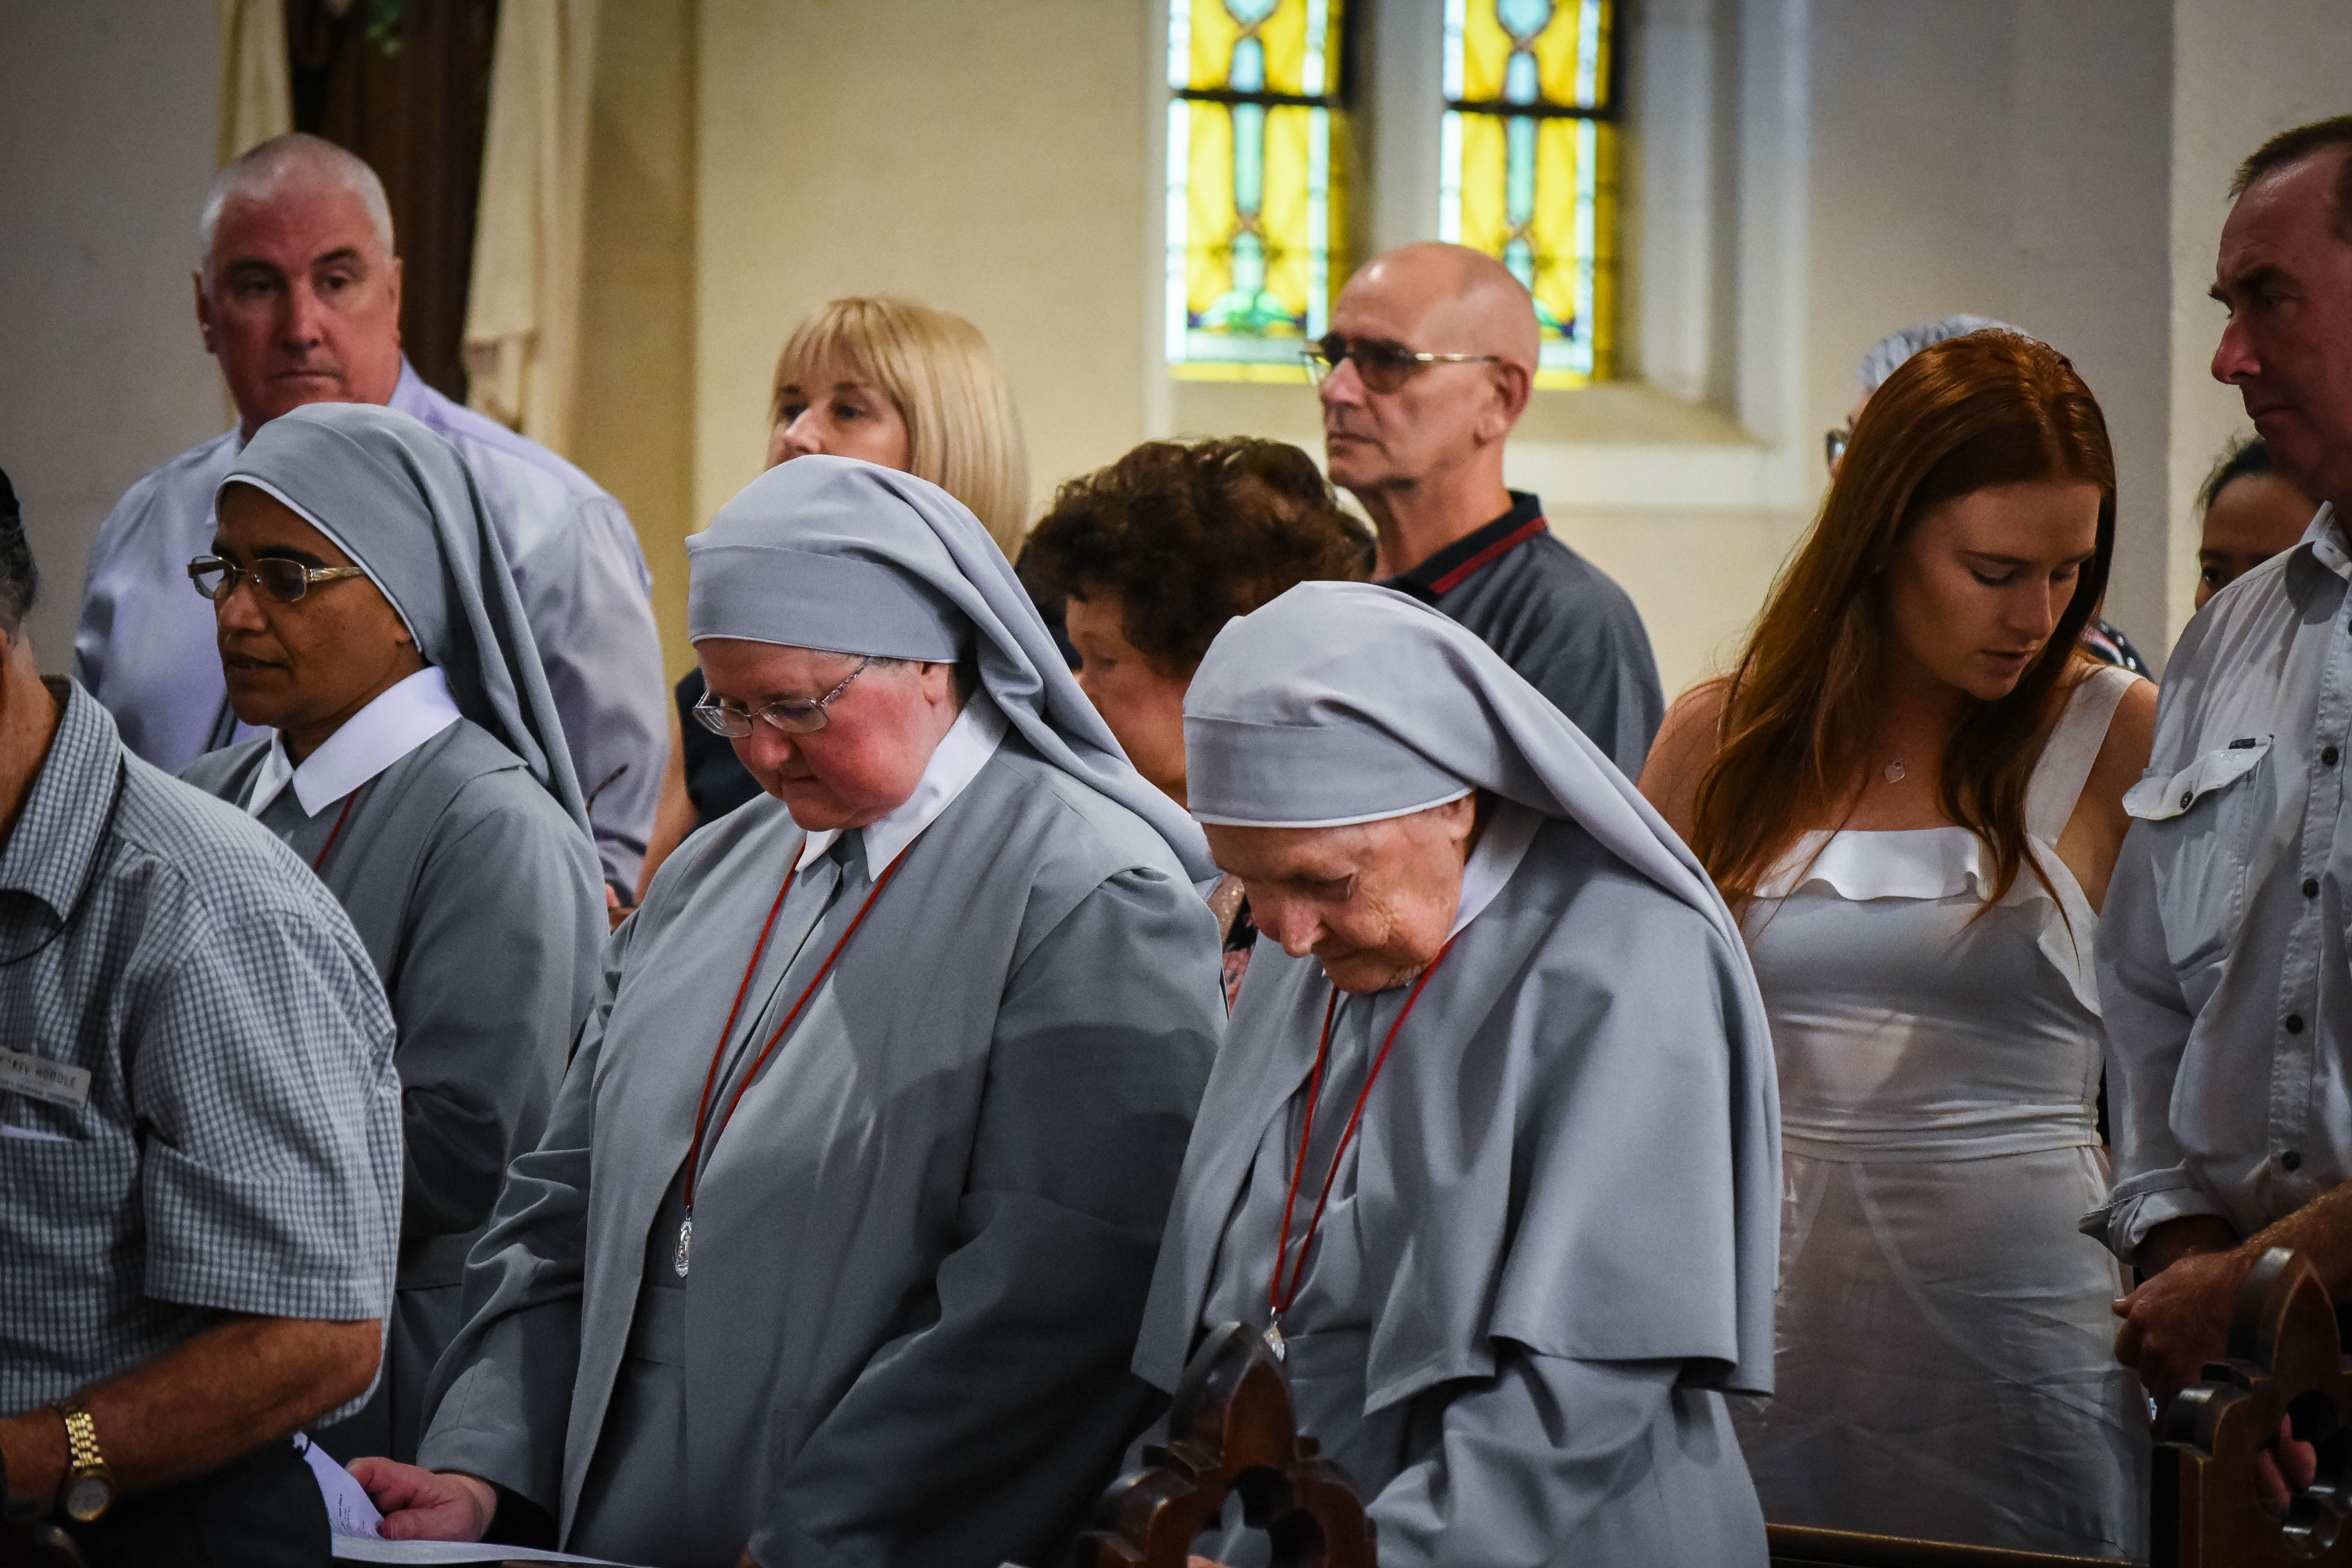 Sisters of St Peter Claver